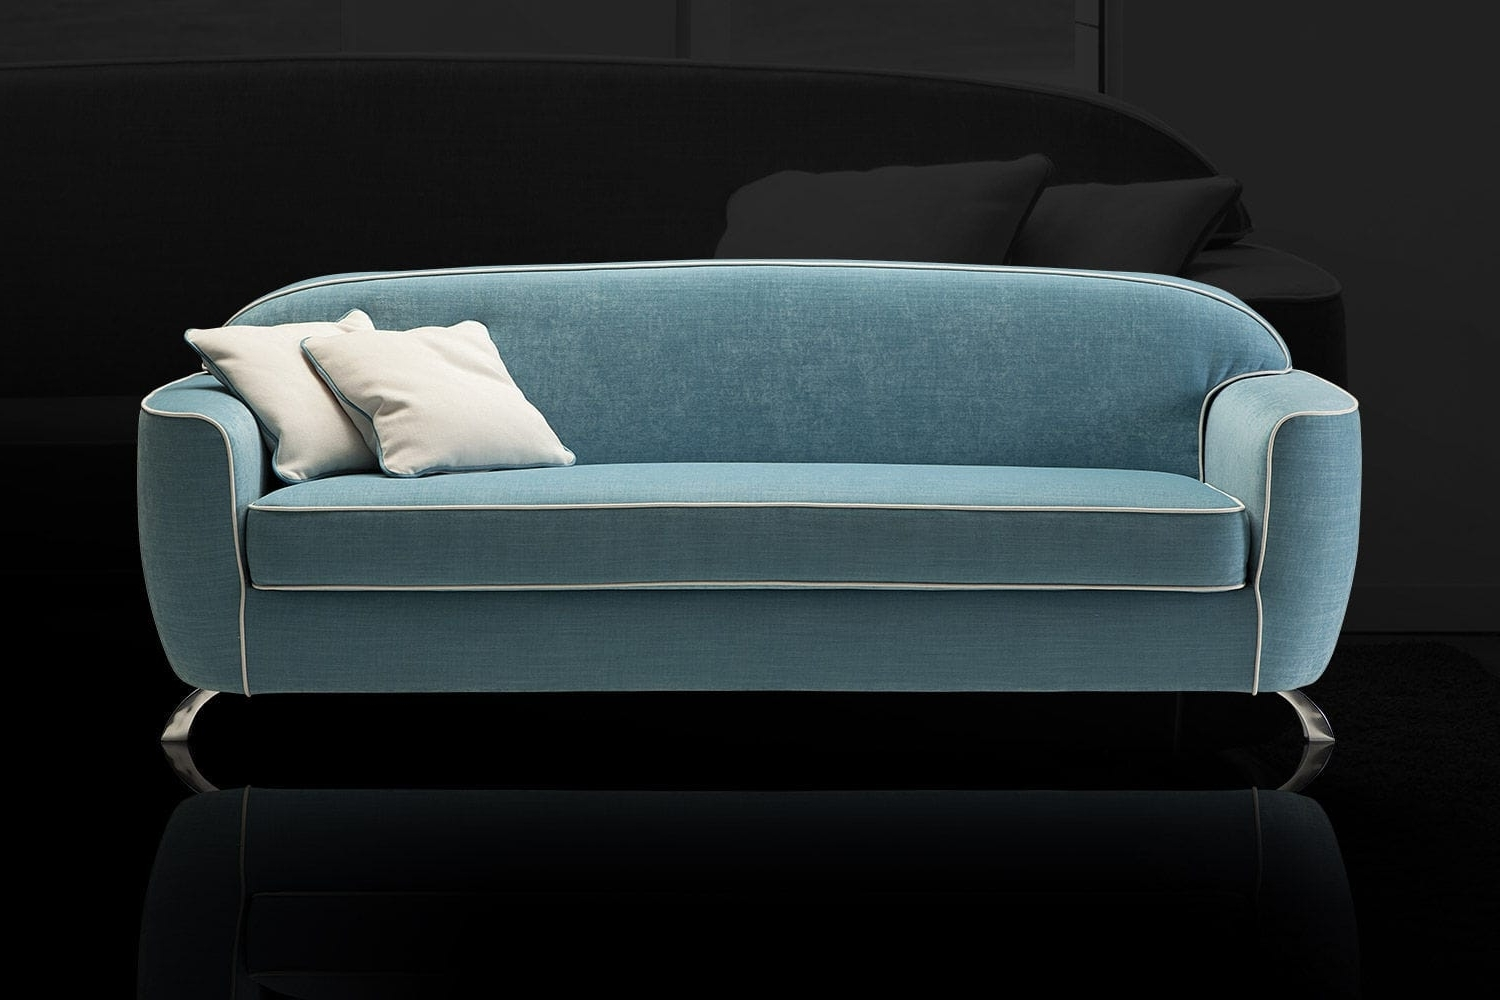 Sofas With Removable Covers 54 With Sofas With Removable Covers For Most Up To Date Sofas With Removable Covers (View 13 of 20)